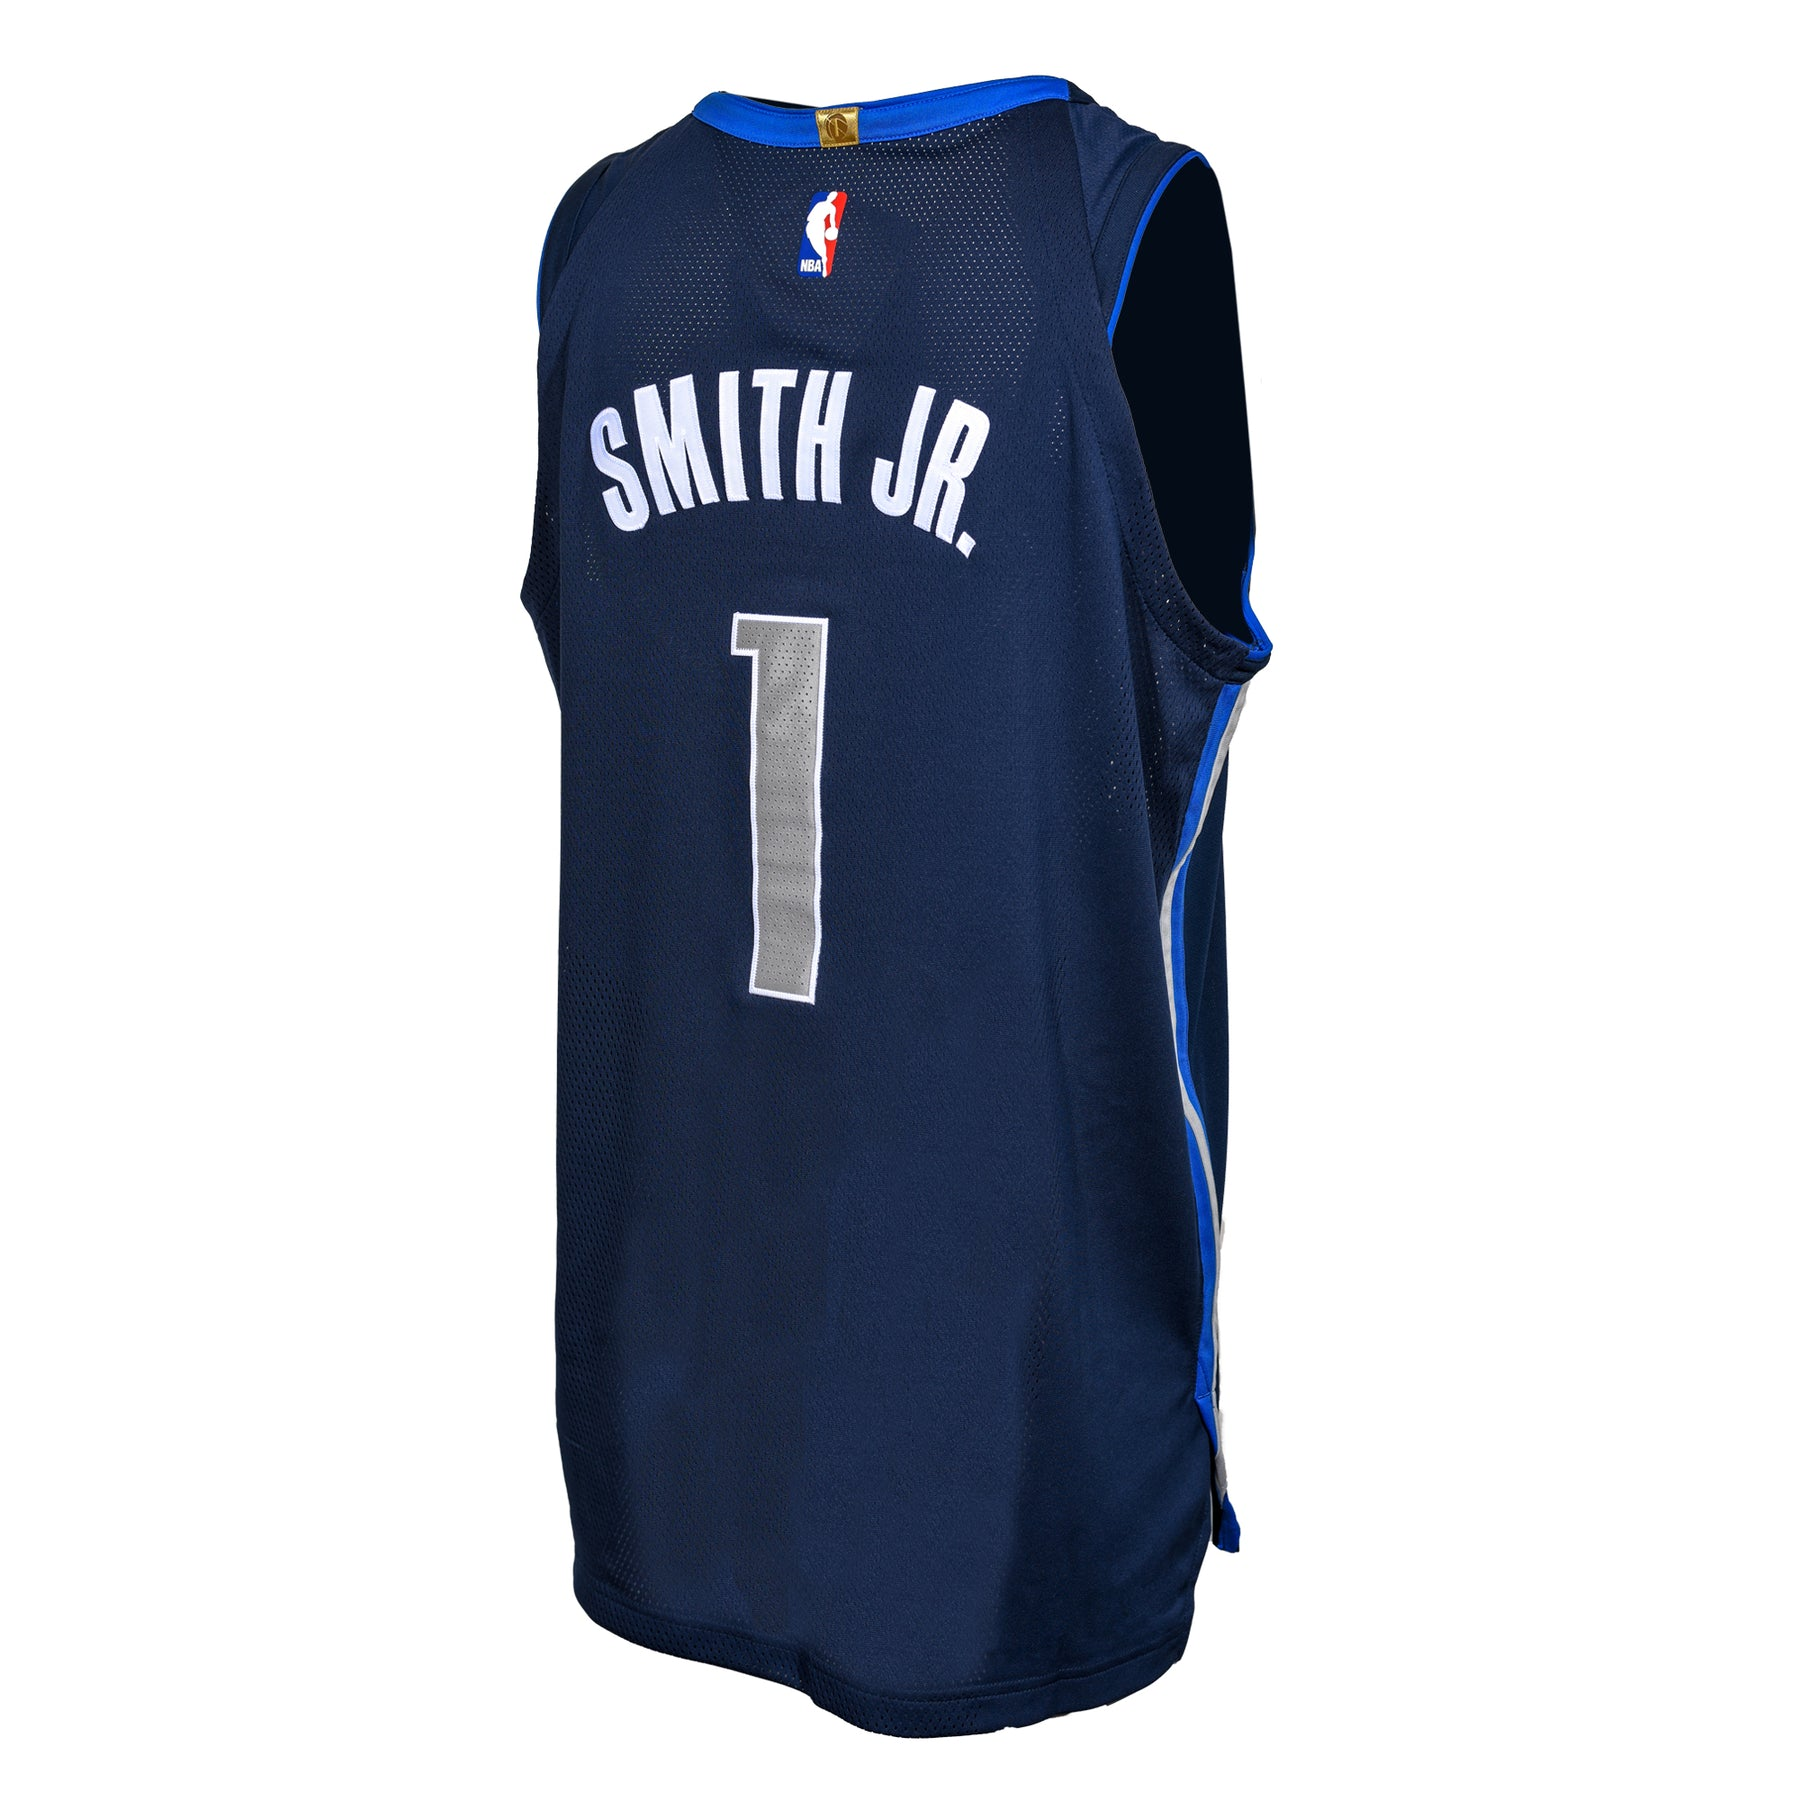 new style 7907b 071cd DALLAS MAVERICKS DENNIS SMITH JR NIKE STATEMENT AUTHENTIC ...